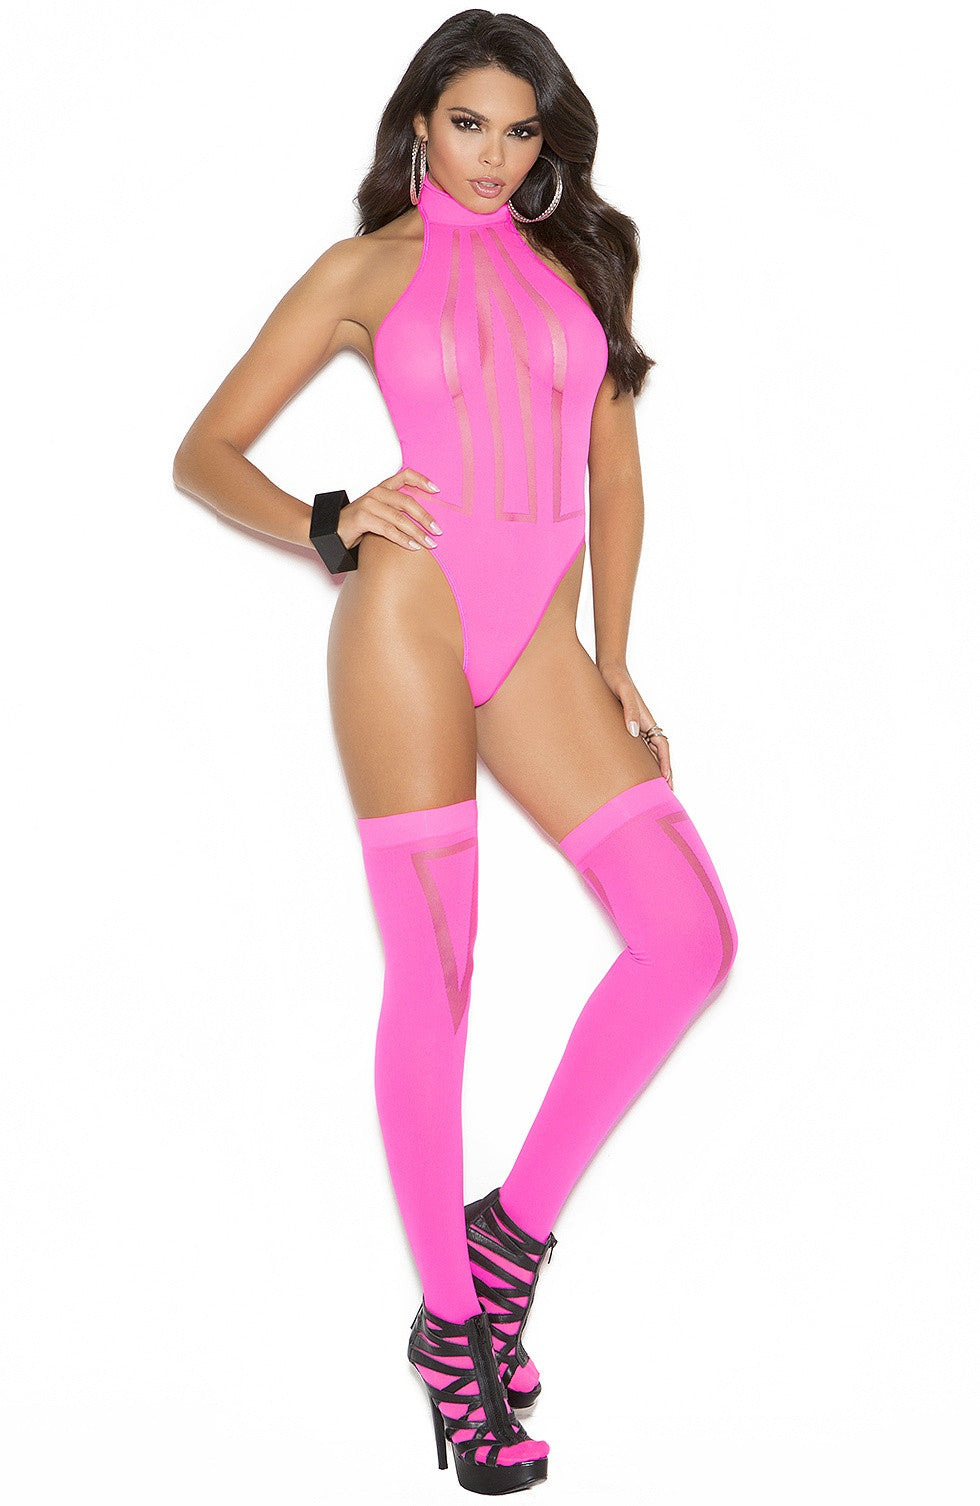 EM-1585 Neon pink teddy & stockings - Sexylingerieland